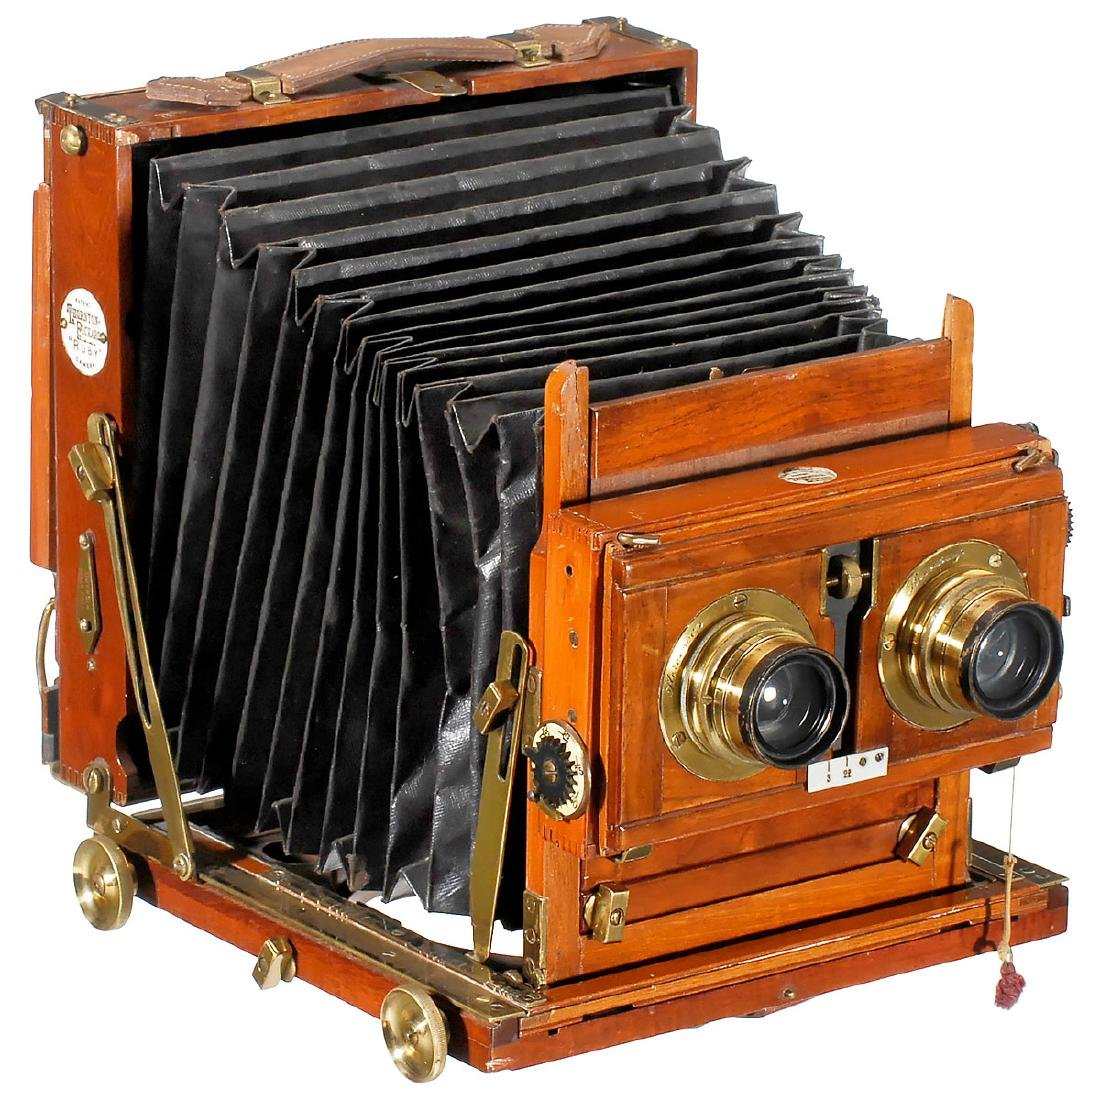 Thornton-Pickard Ruby Stereo, c. 1900